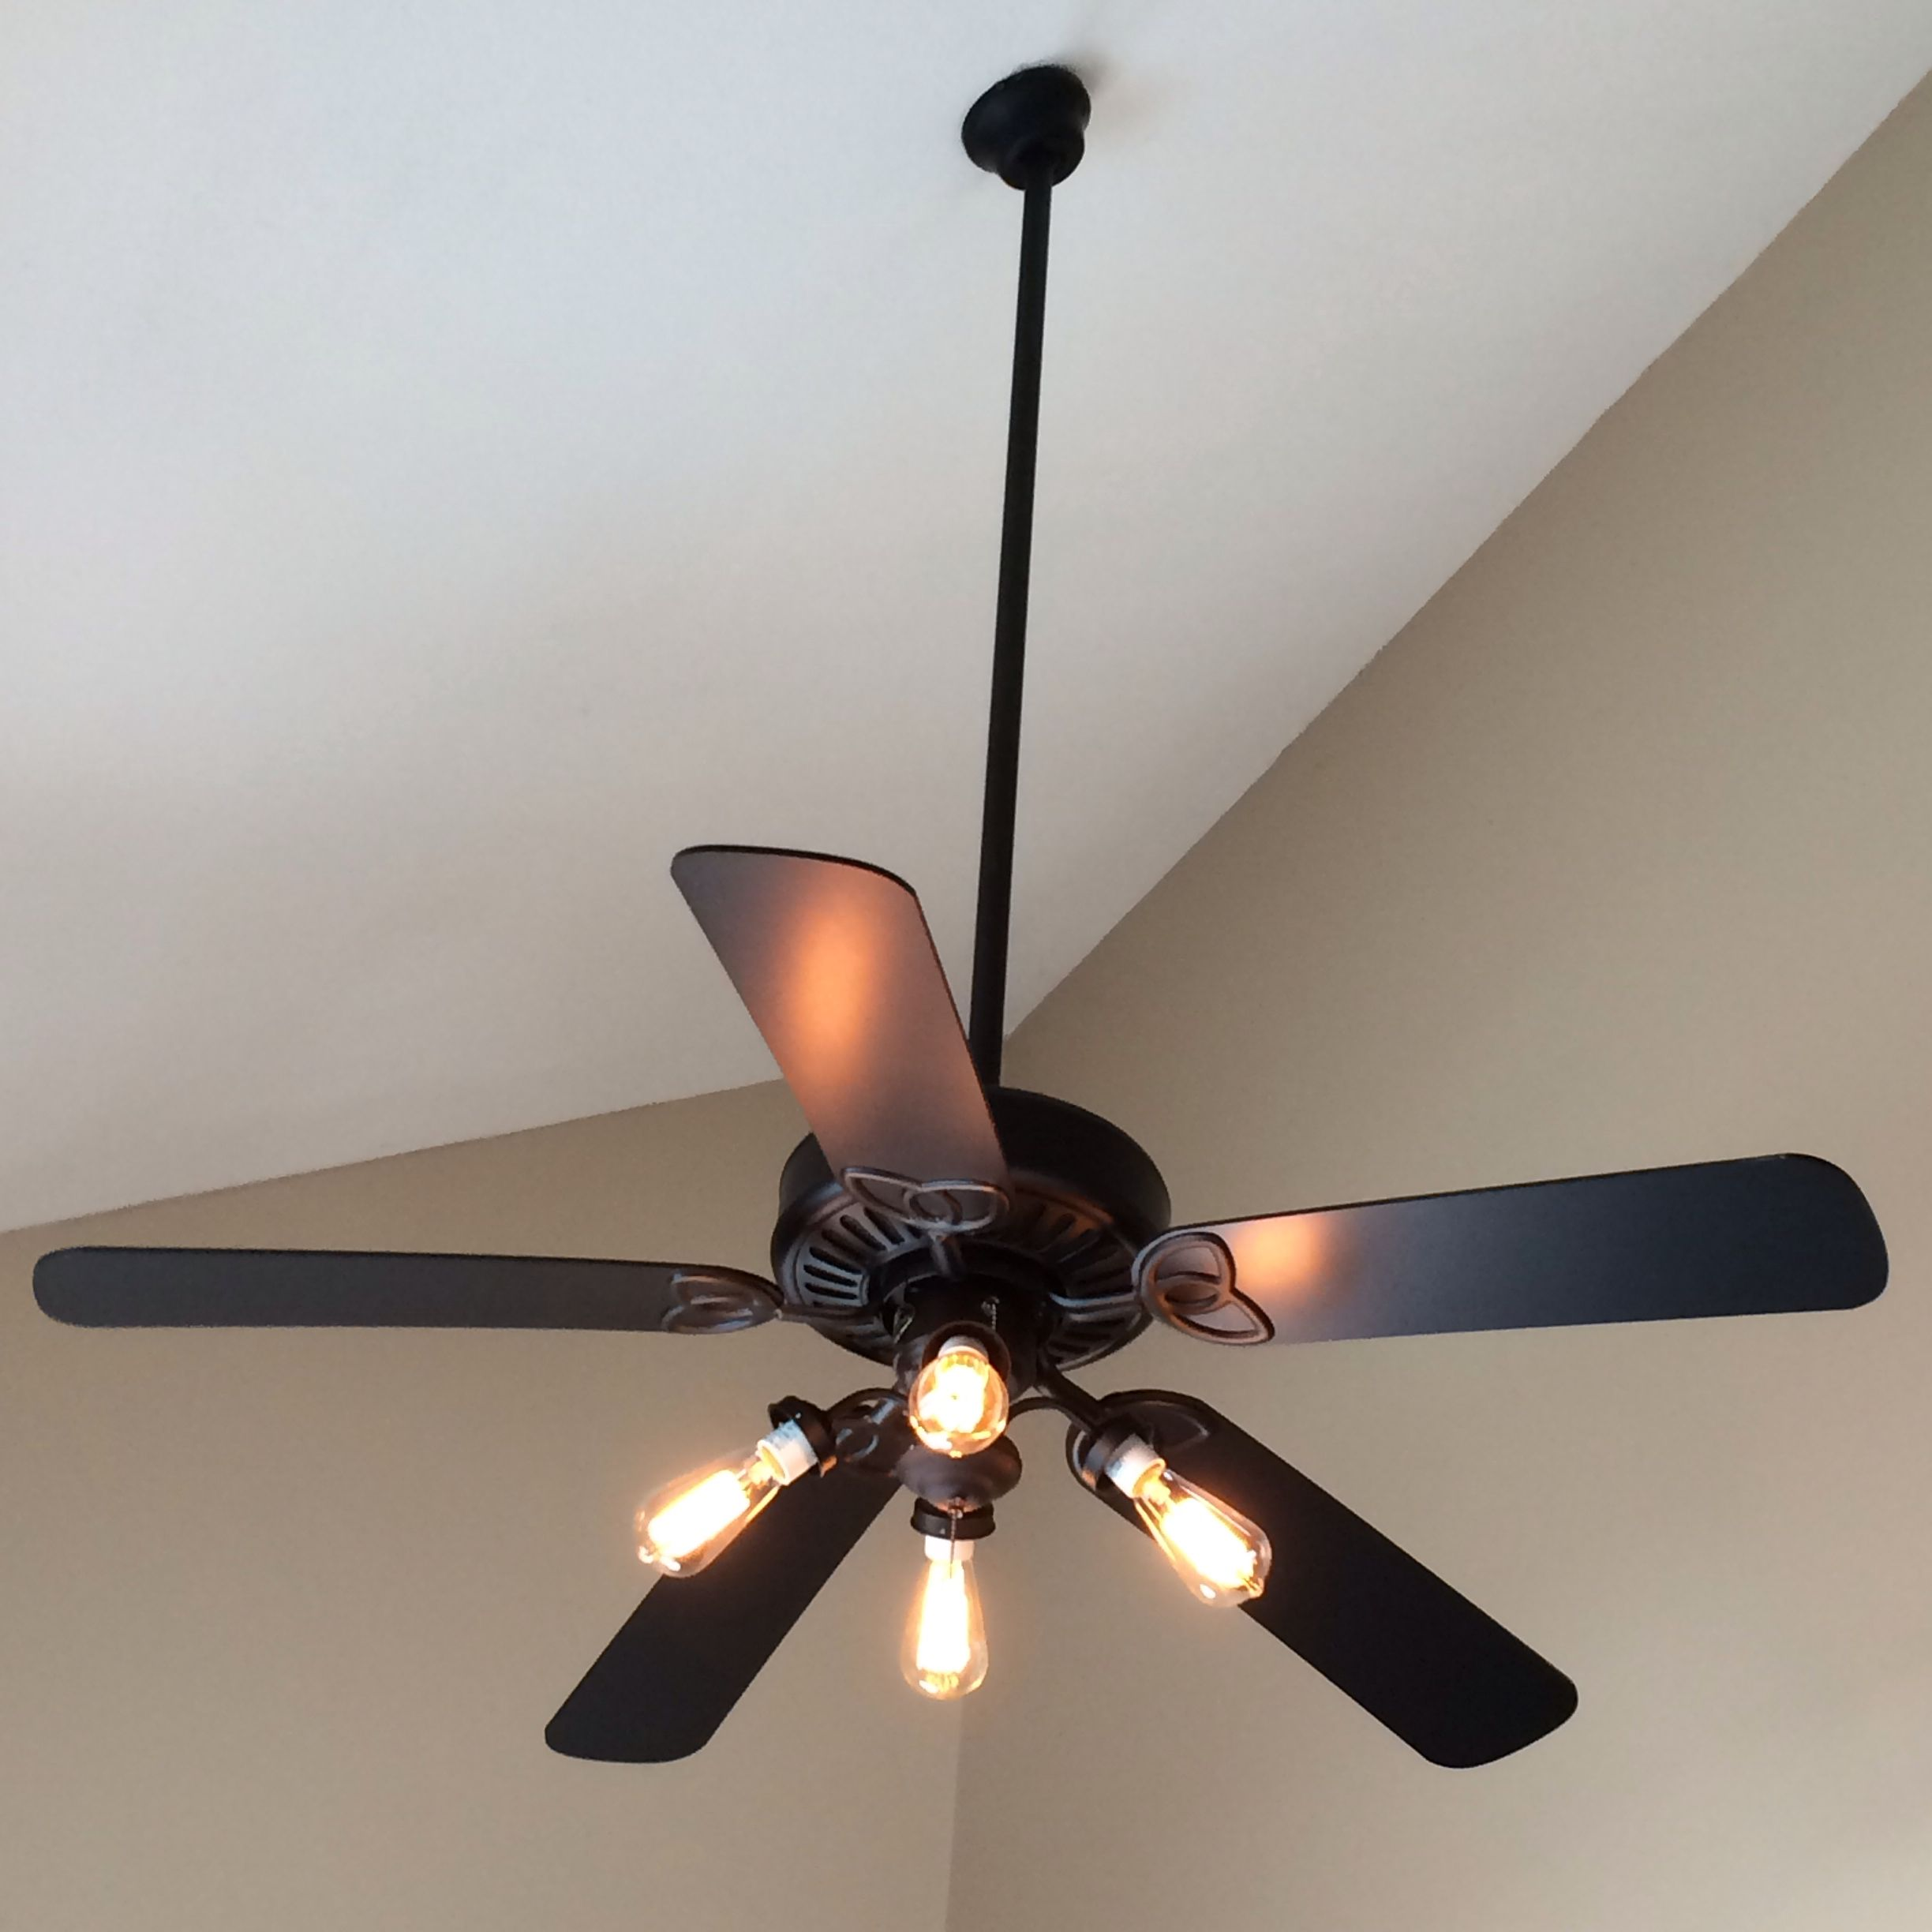 Quick Ceiling Fan Makeover Simply Remove The Shades And Screws And Use Edison Bulbs For A More Mode Ceiling Fan Makeover Fan Light Ceiling Fans Without Lights